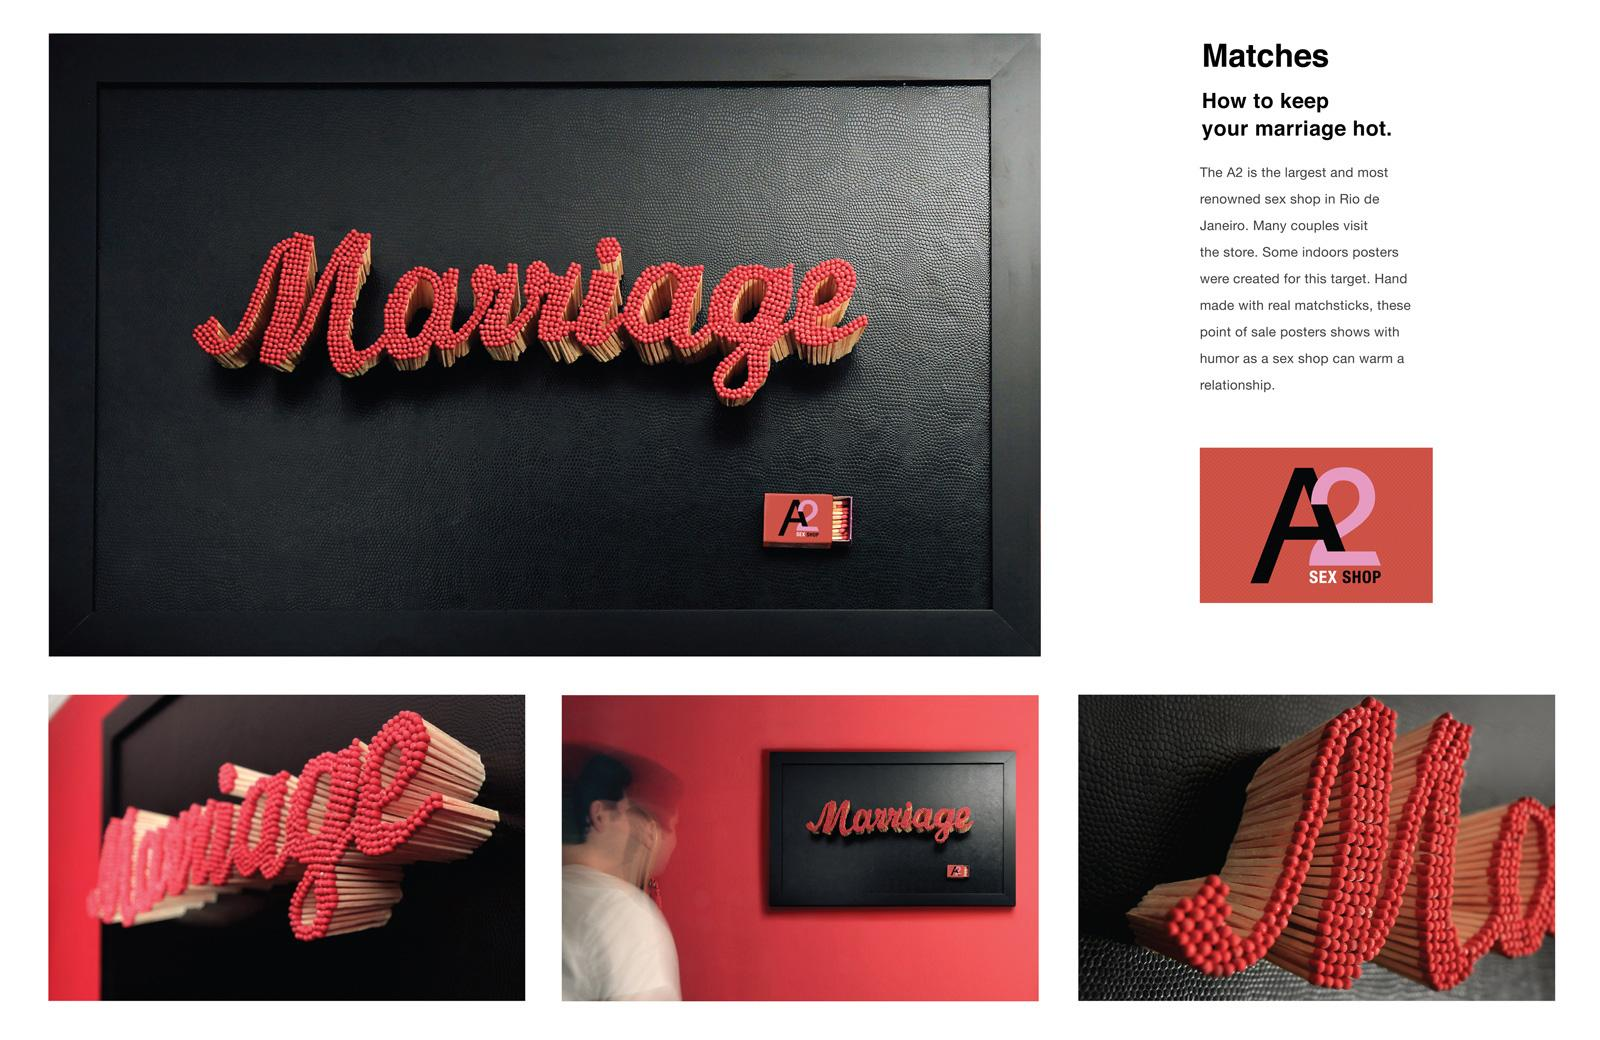 A2 Sexshop Outdoor Ad -  Matches